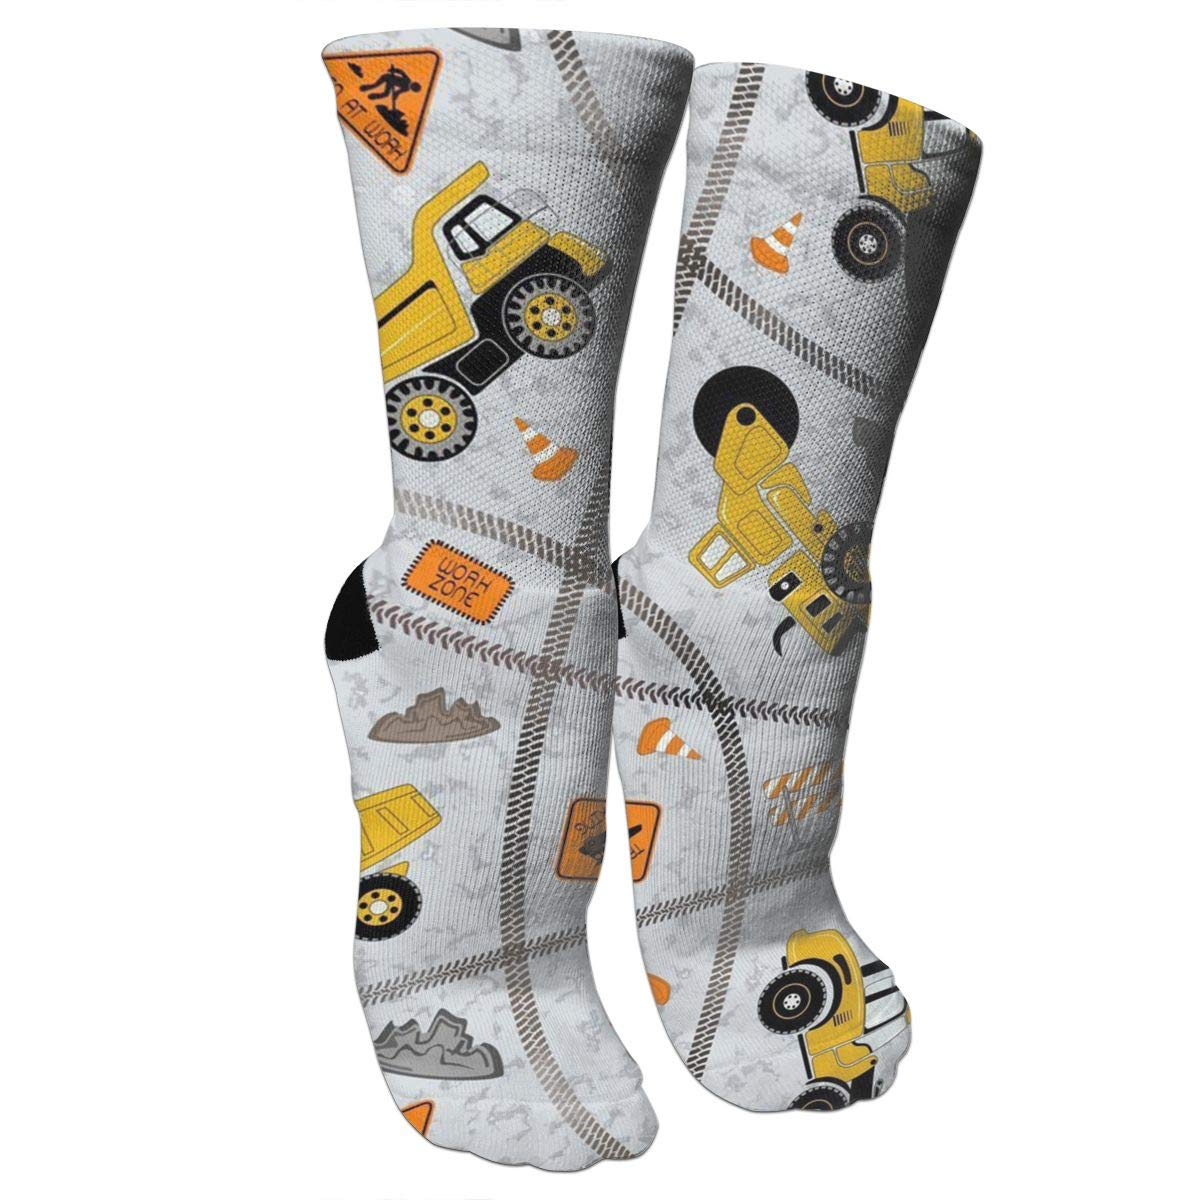 Construction Trucks Zone Casual Cotton Crew Socks Cute Funny Sock,great For Sports And Hiking